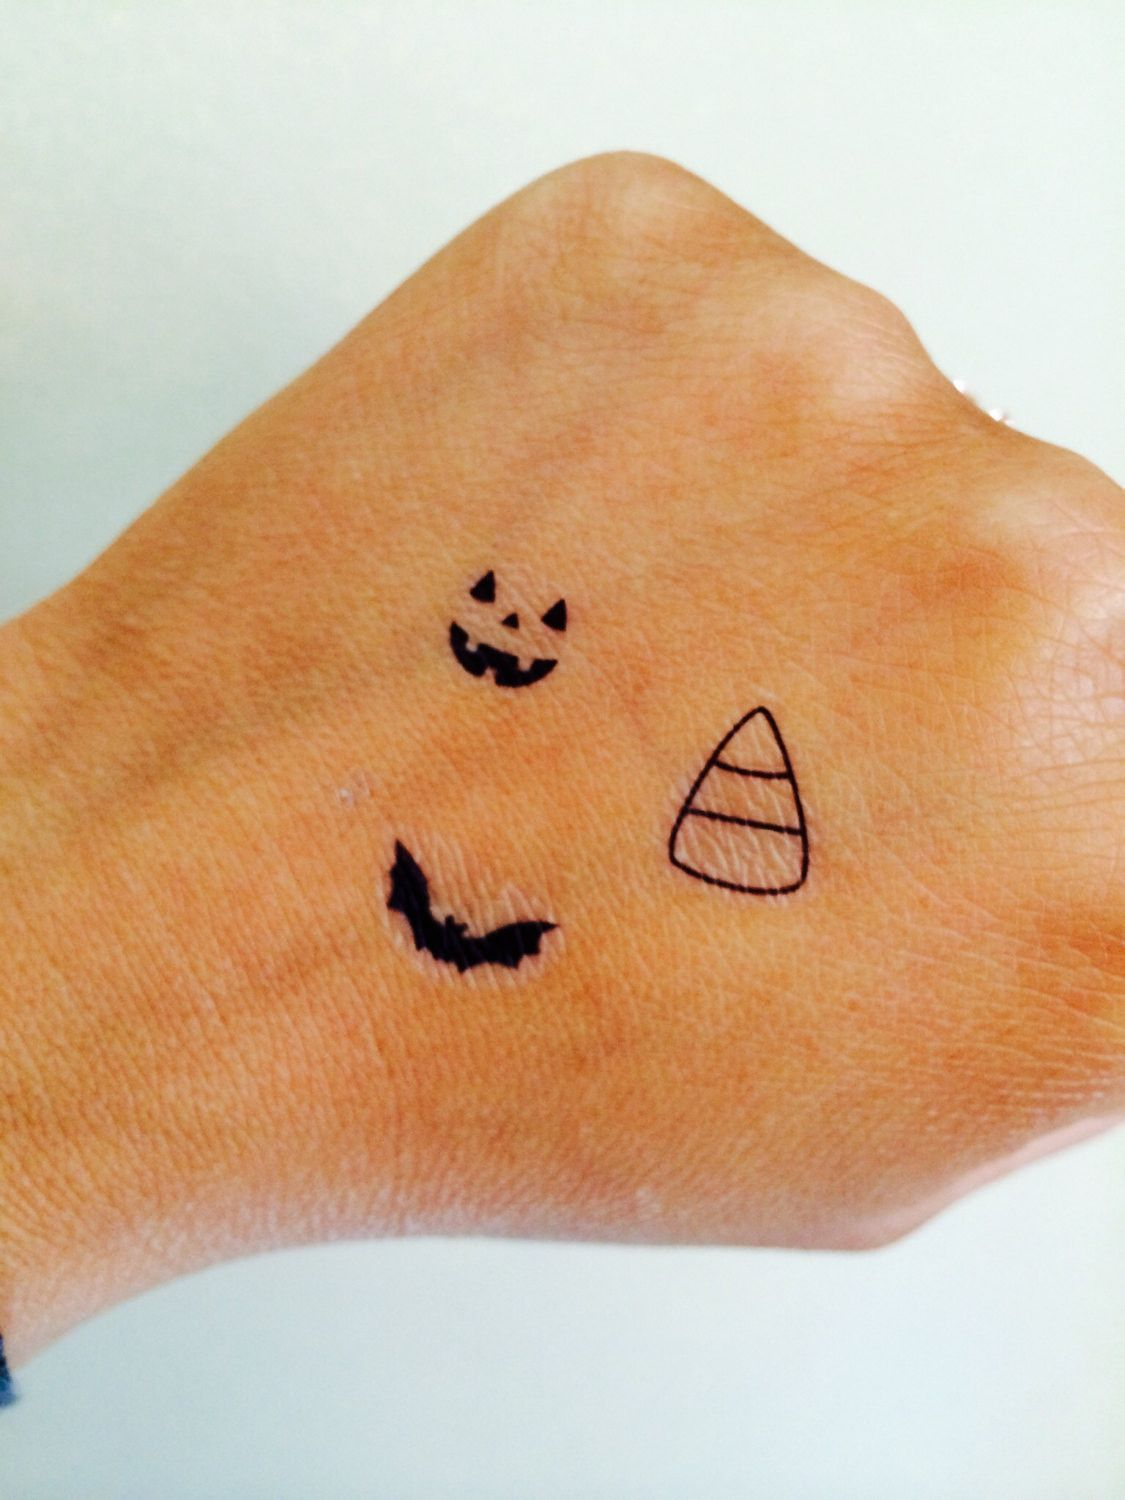 fb4e42c70 Halloween Collection Temporary Tattoo Tiny / Fake Tattoos / Set of 15 /  bats candy corn pumpkin